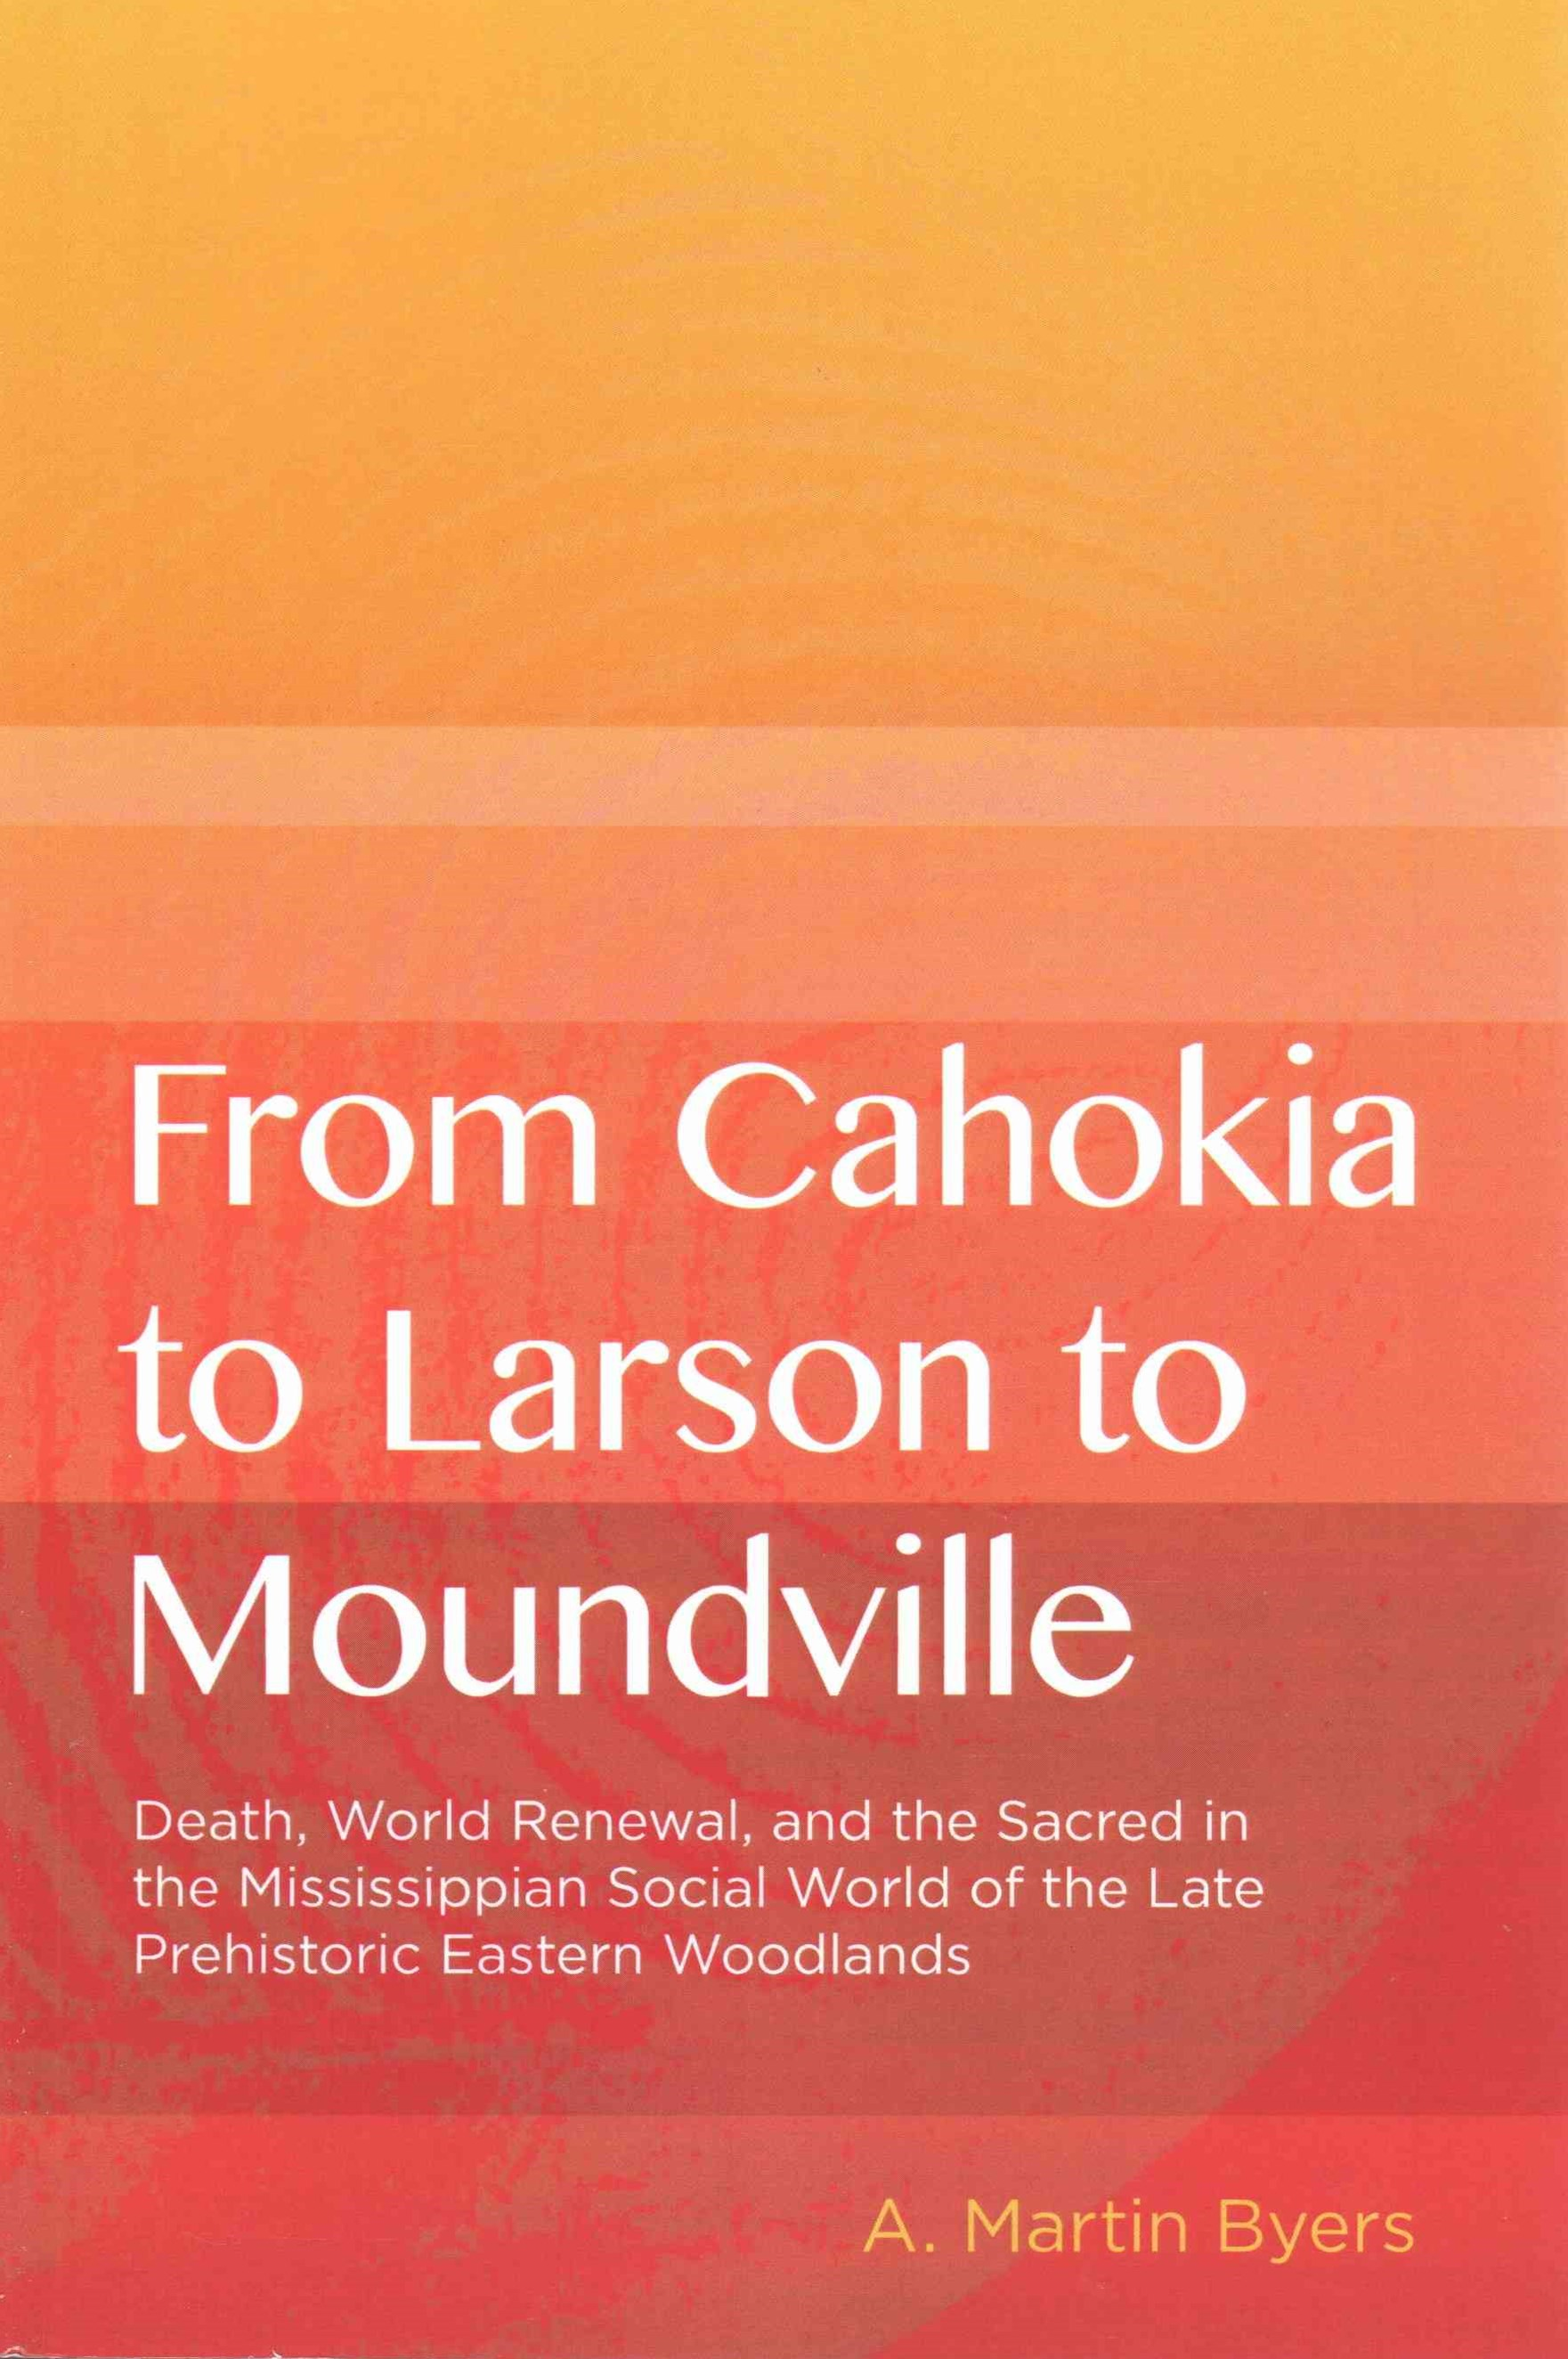 From Cahokia to Larson to Moundville